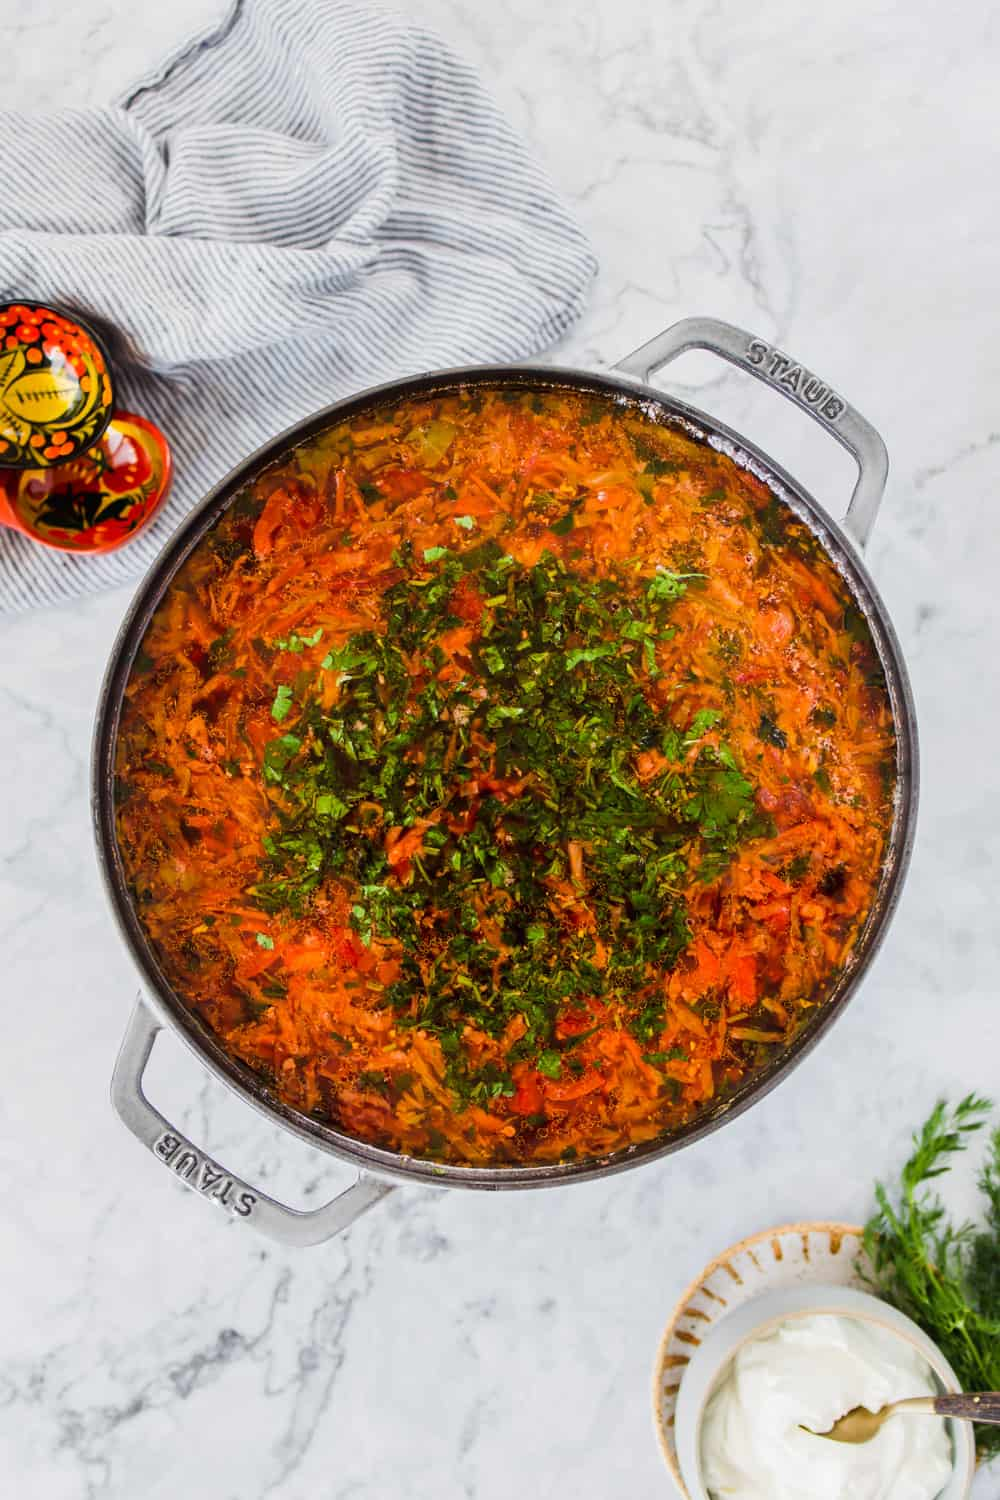 Large pot filled with orange soup and green herbs on top